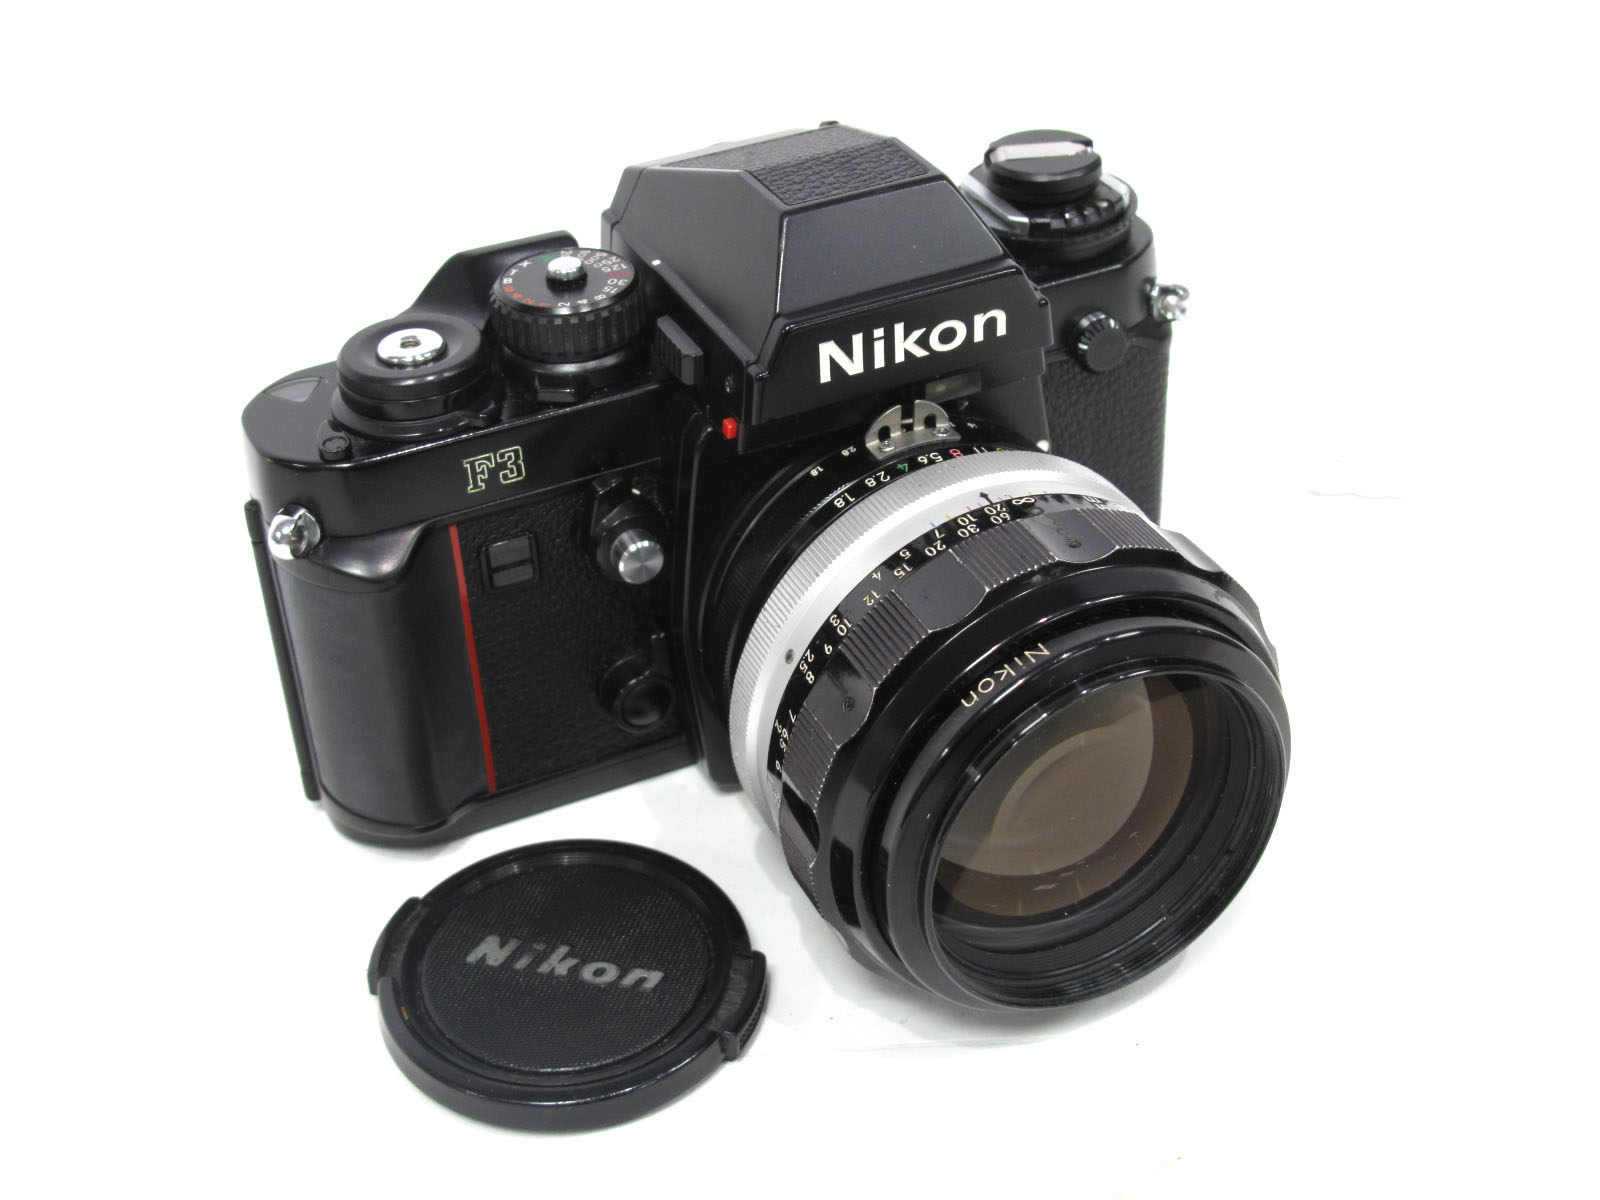 Nikon F3, with Nikkor-H Auto 1-18 f=85mm lens.